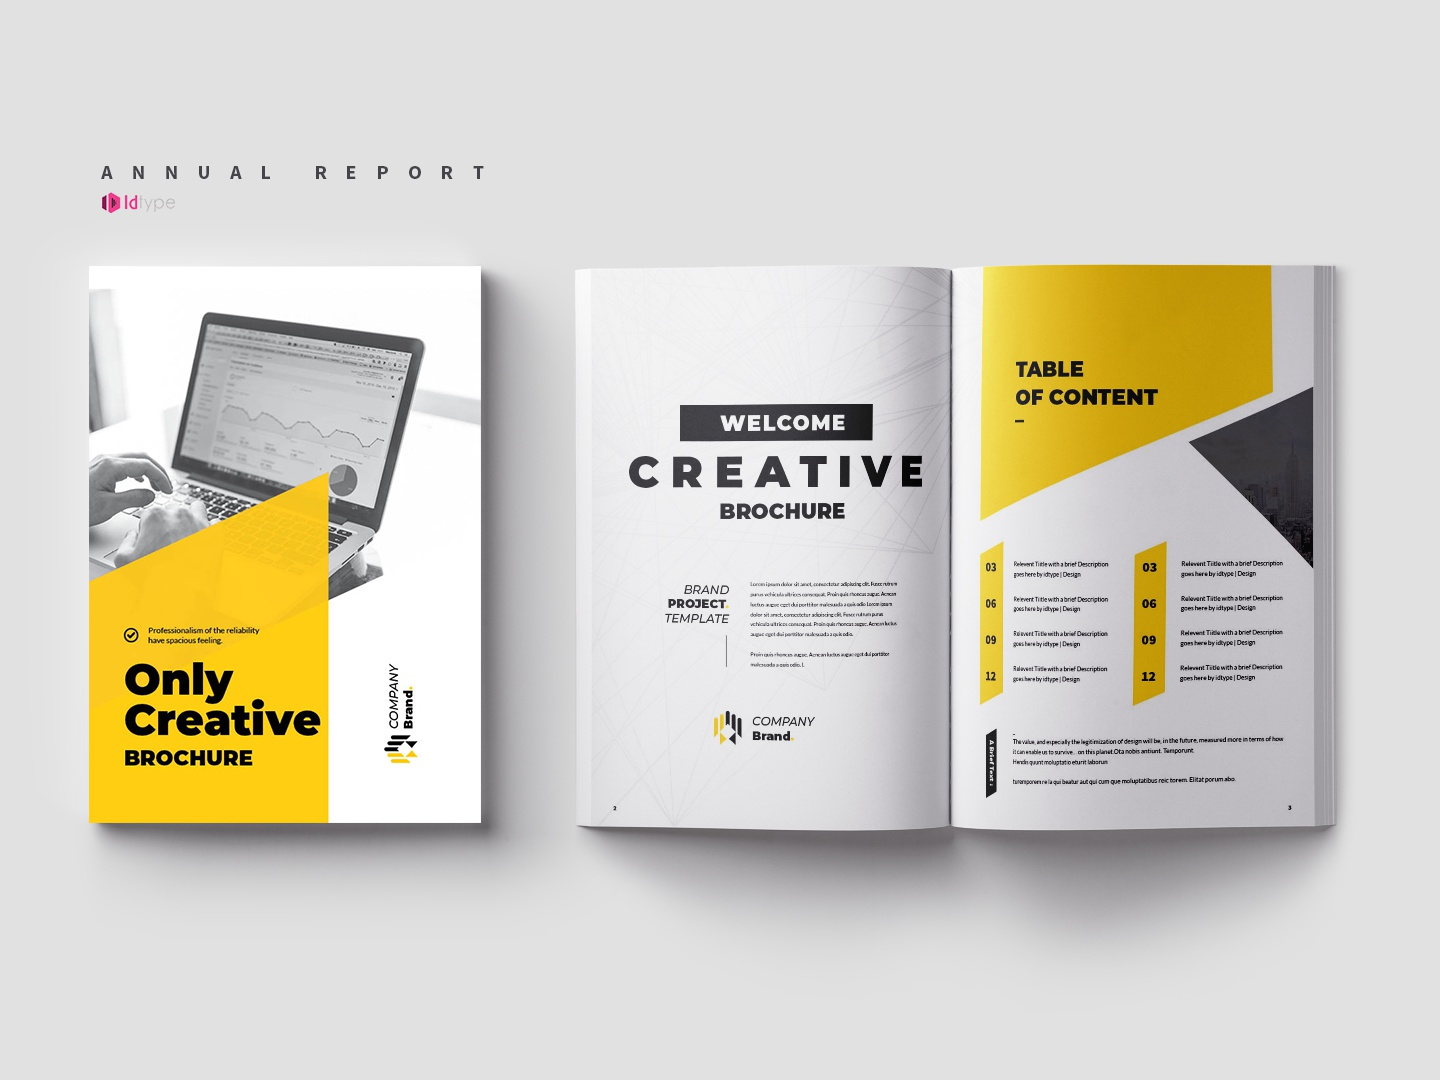 Annual Report Template proposal template indesign proposal template proposal indesign template proposal project proposal professional modern informational indesign template indesign proposal template indesign creative corporate company proposal clean proposal clean business proposal business brochure a4